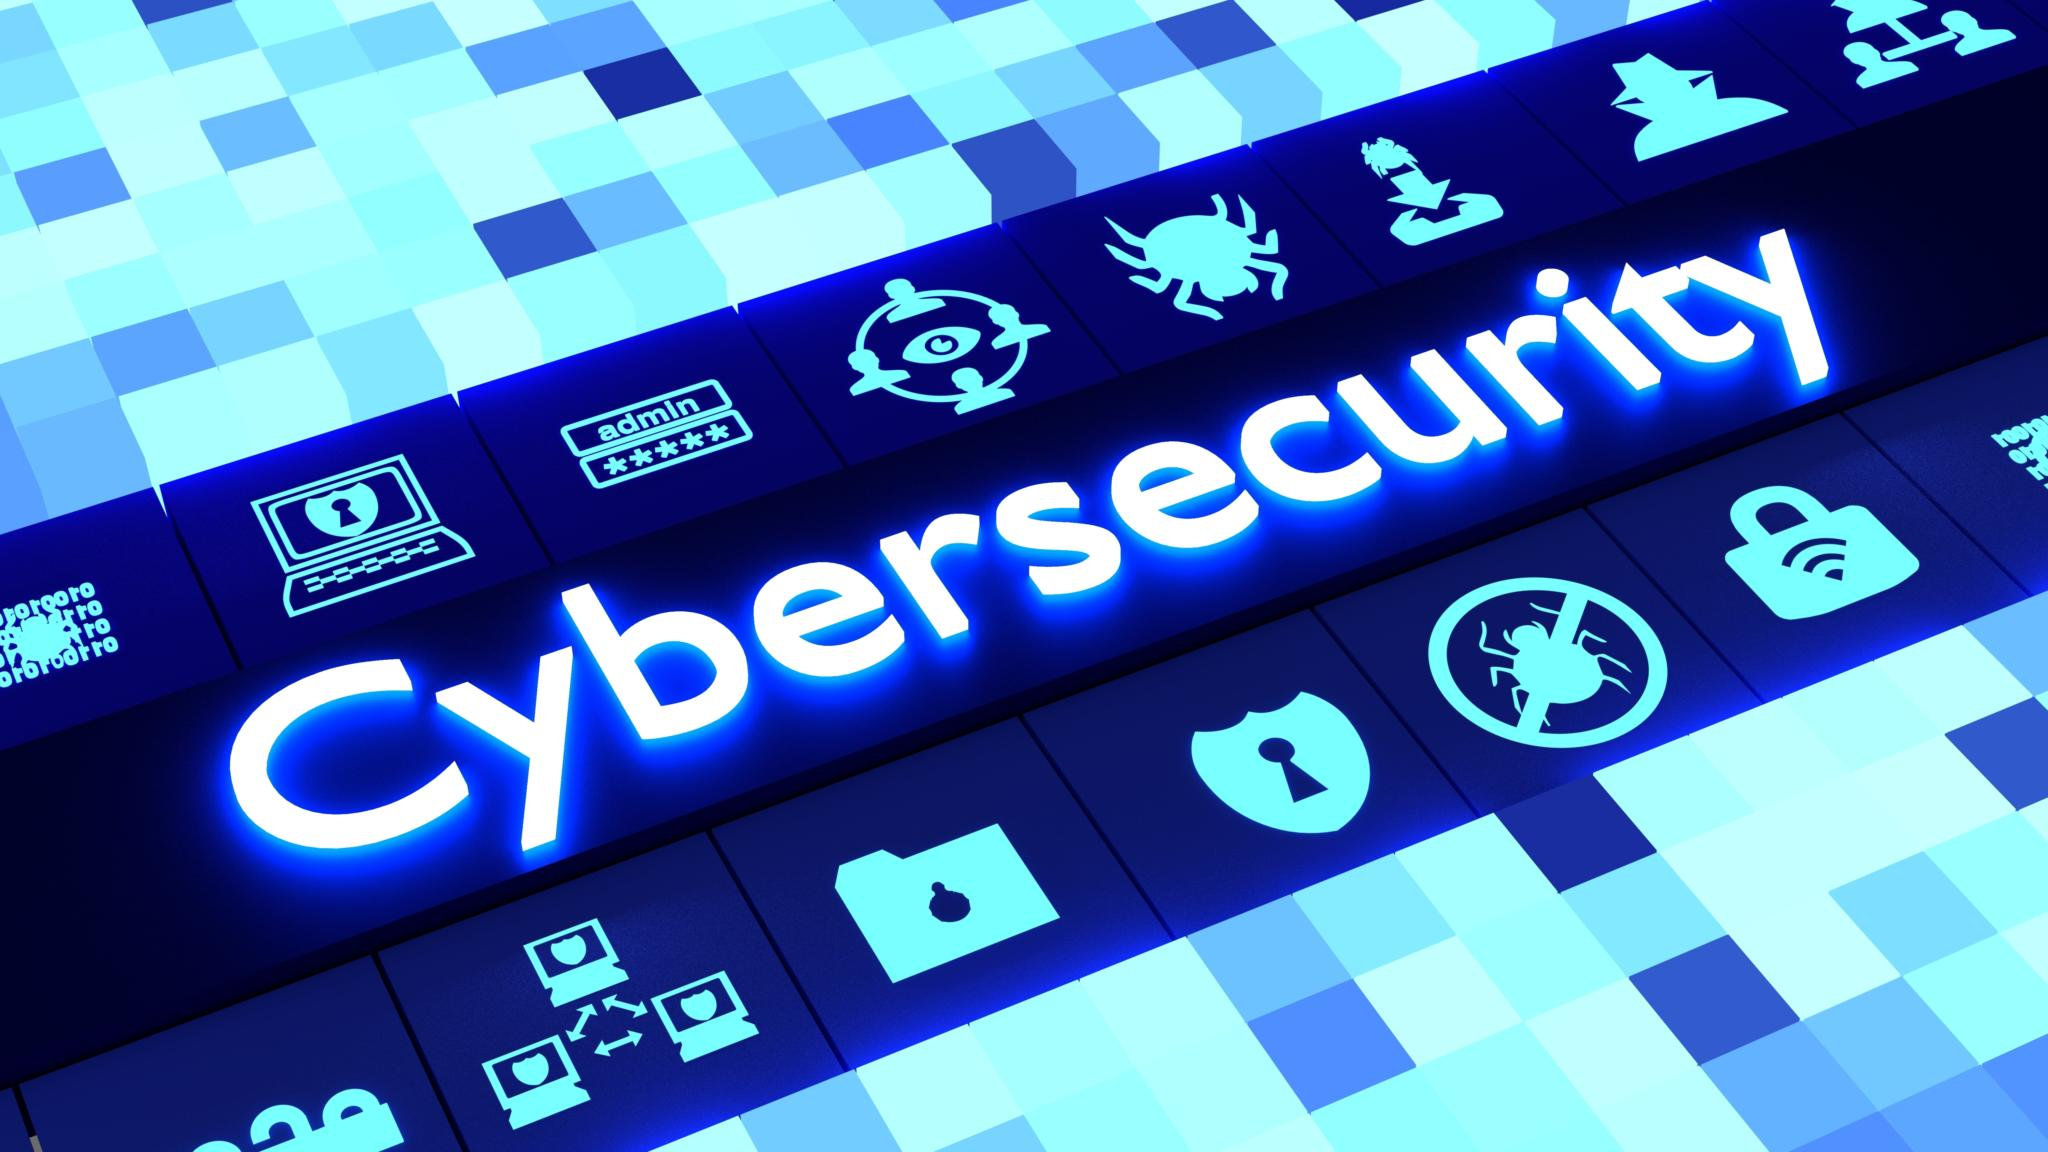 Get Your Cybersecurity Score from Microsoft using this